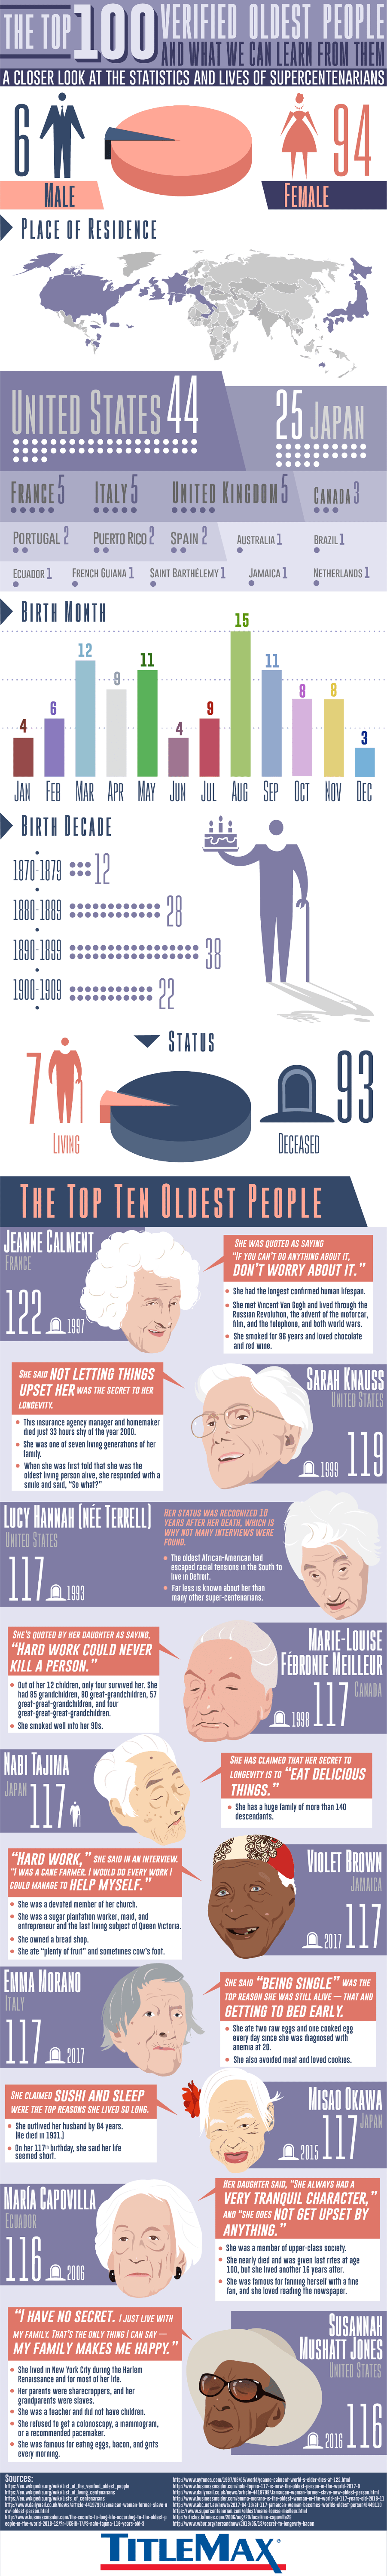 100 Oldest Verified People and what we can Learn From Them